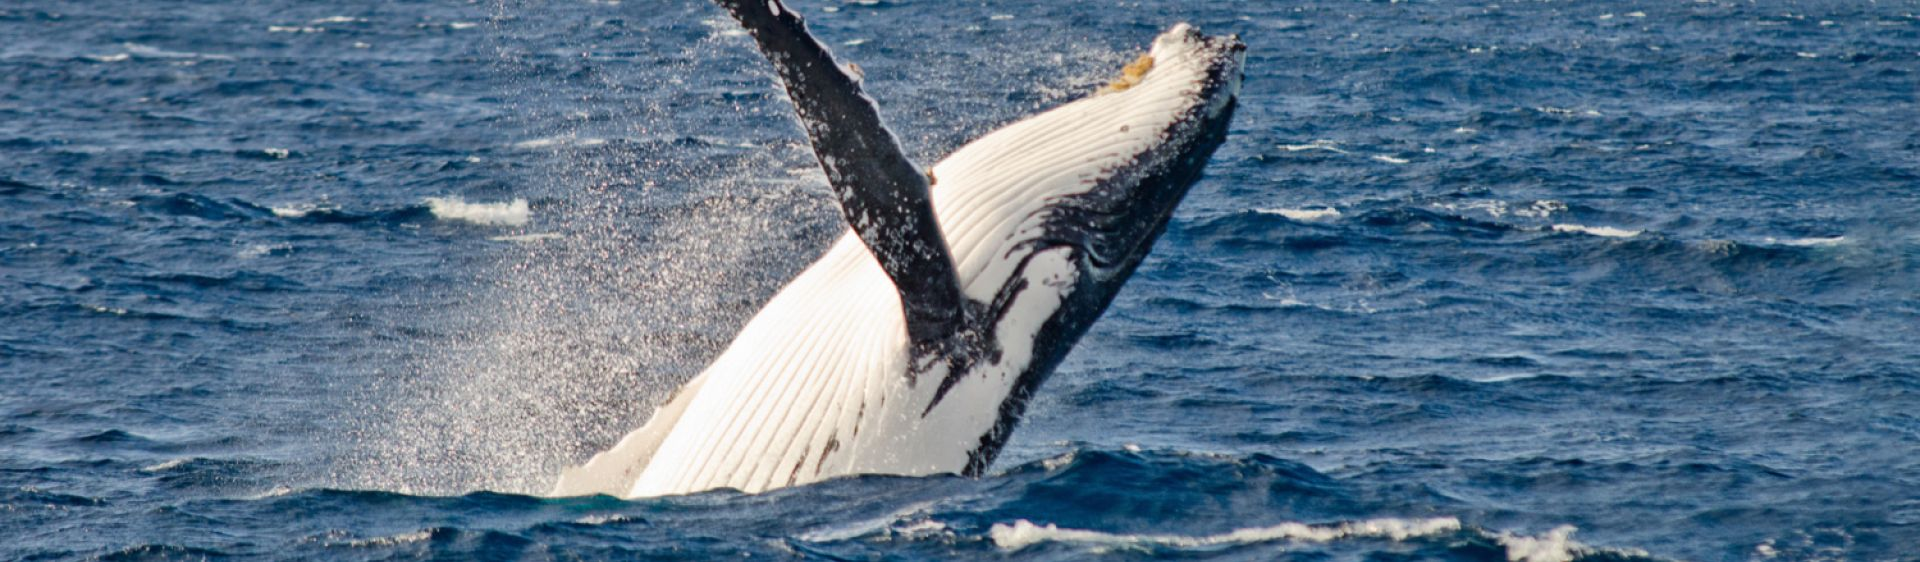 7534b416676 Whale Watching NSW - Whale Watching Season, Activities & Migration